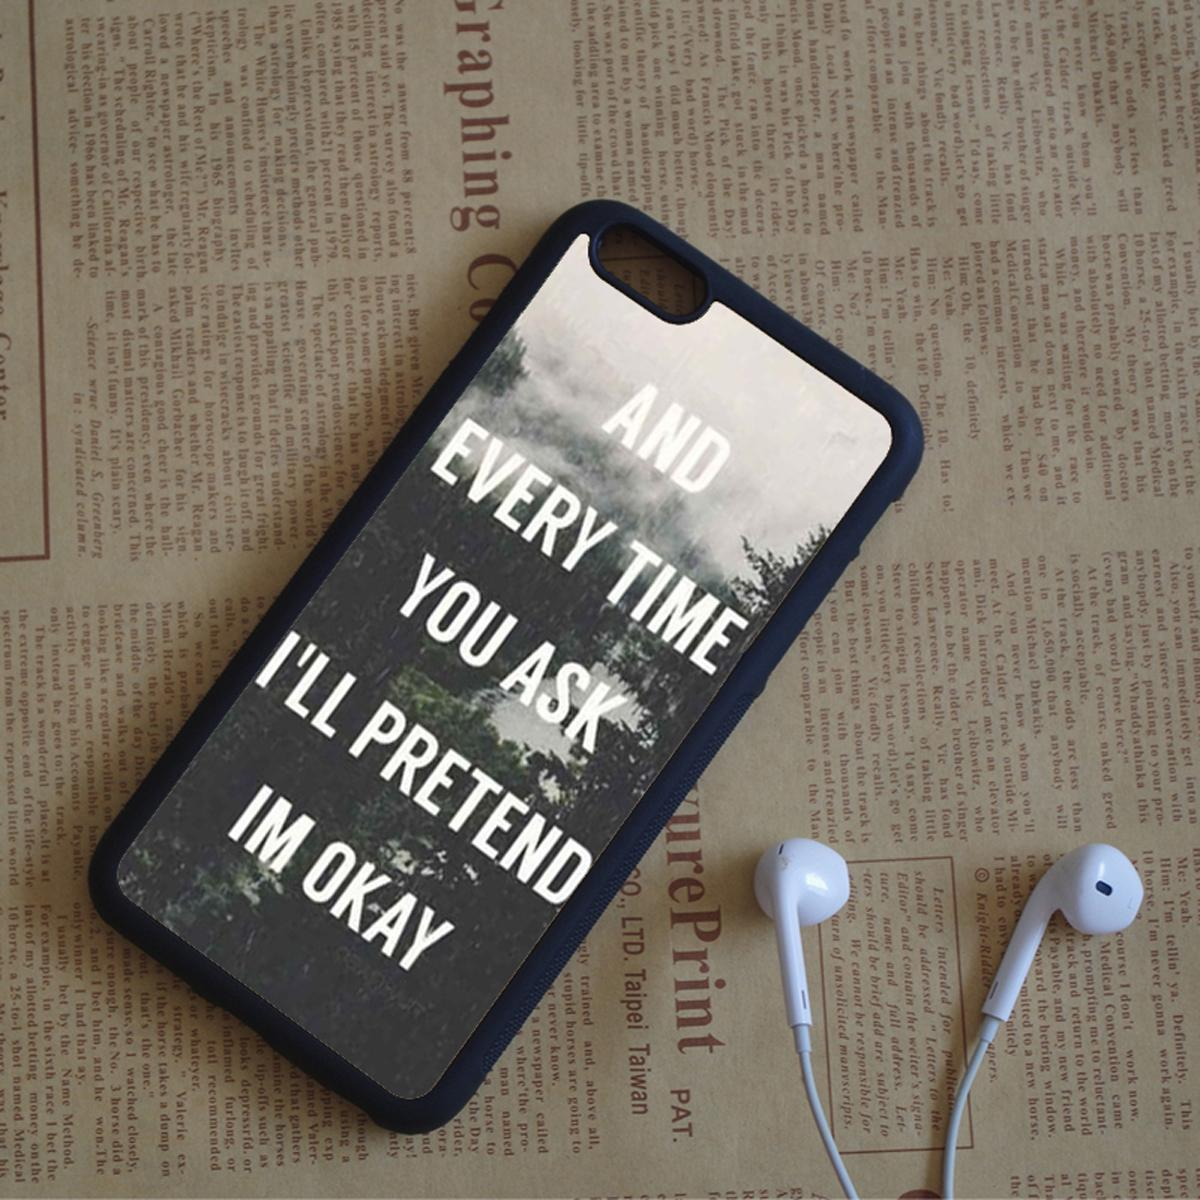 Cell Phone Quotes Shawn Mendes Quotes Phone Cases For Iphone 6 6S Plus 7 7 Plus 5 5S